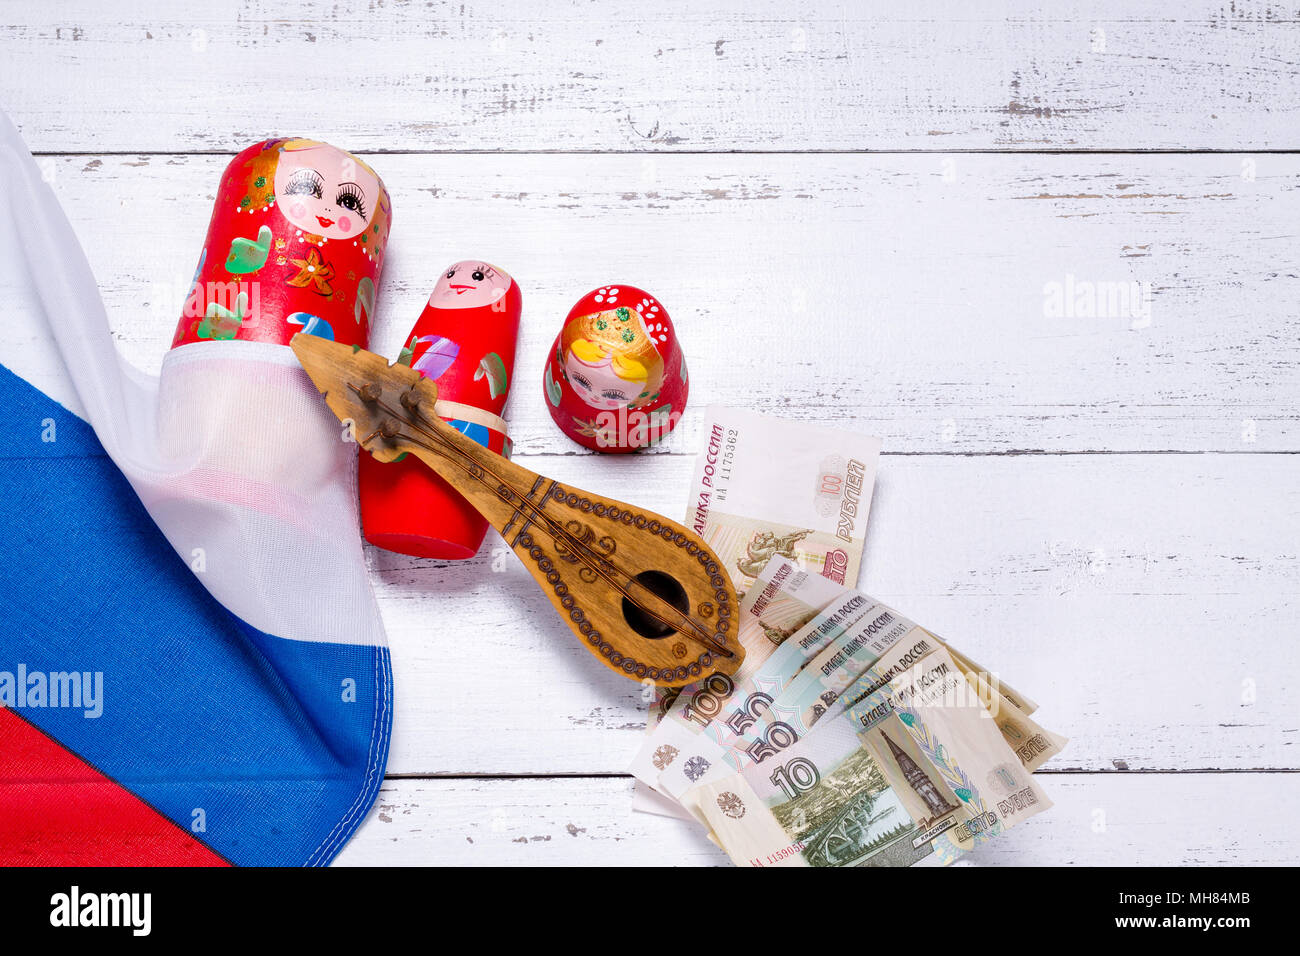 Russian symbols matryoshka, balalaika, rubles cash and flag of russian federation on wooden background. - Stock Image